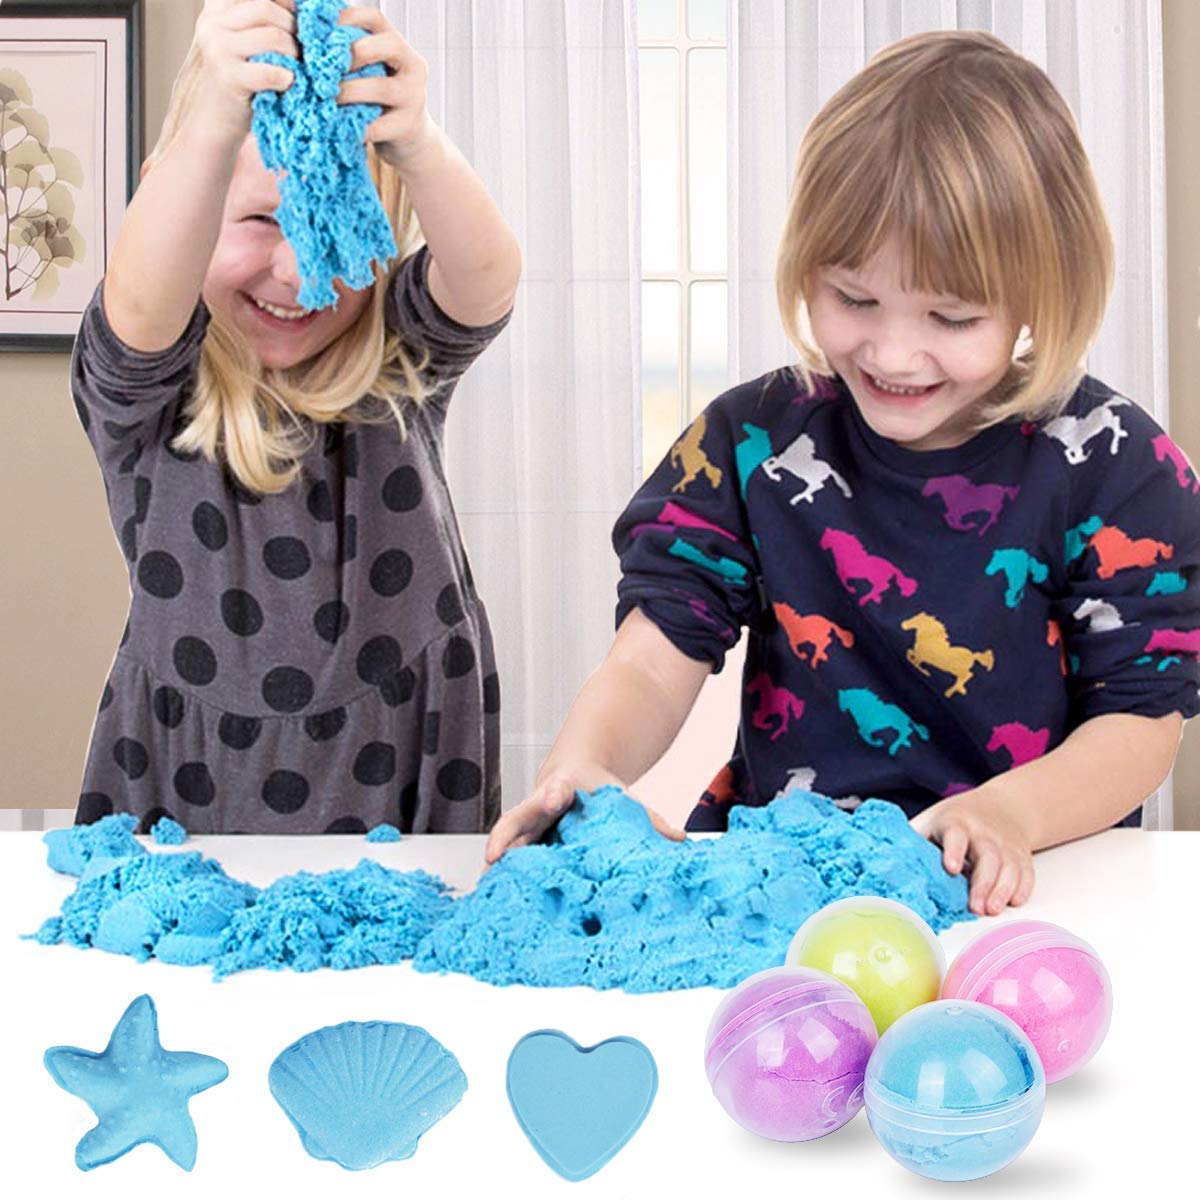 Meland Cloud Slime 10.5 OZ Snow Fluffy Cloud Slime Cotton Slime for Kids and Adults - 4 Colors (Blue, Purple, Yellow, Pink) by Meland (Image #6)